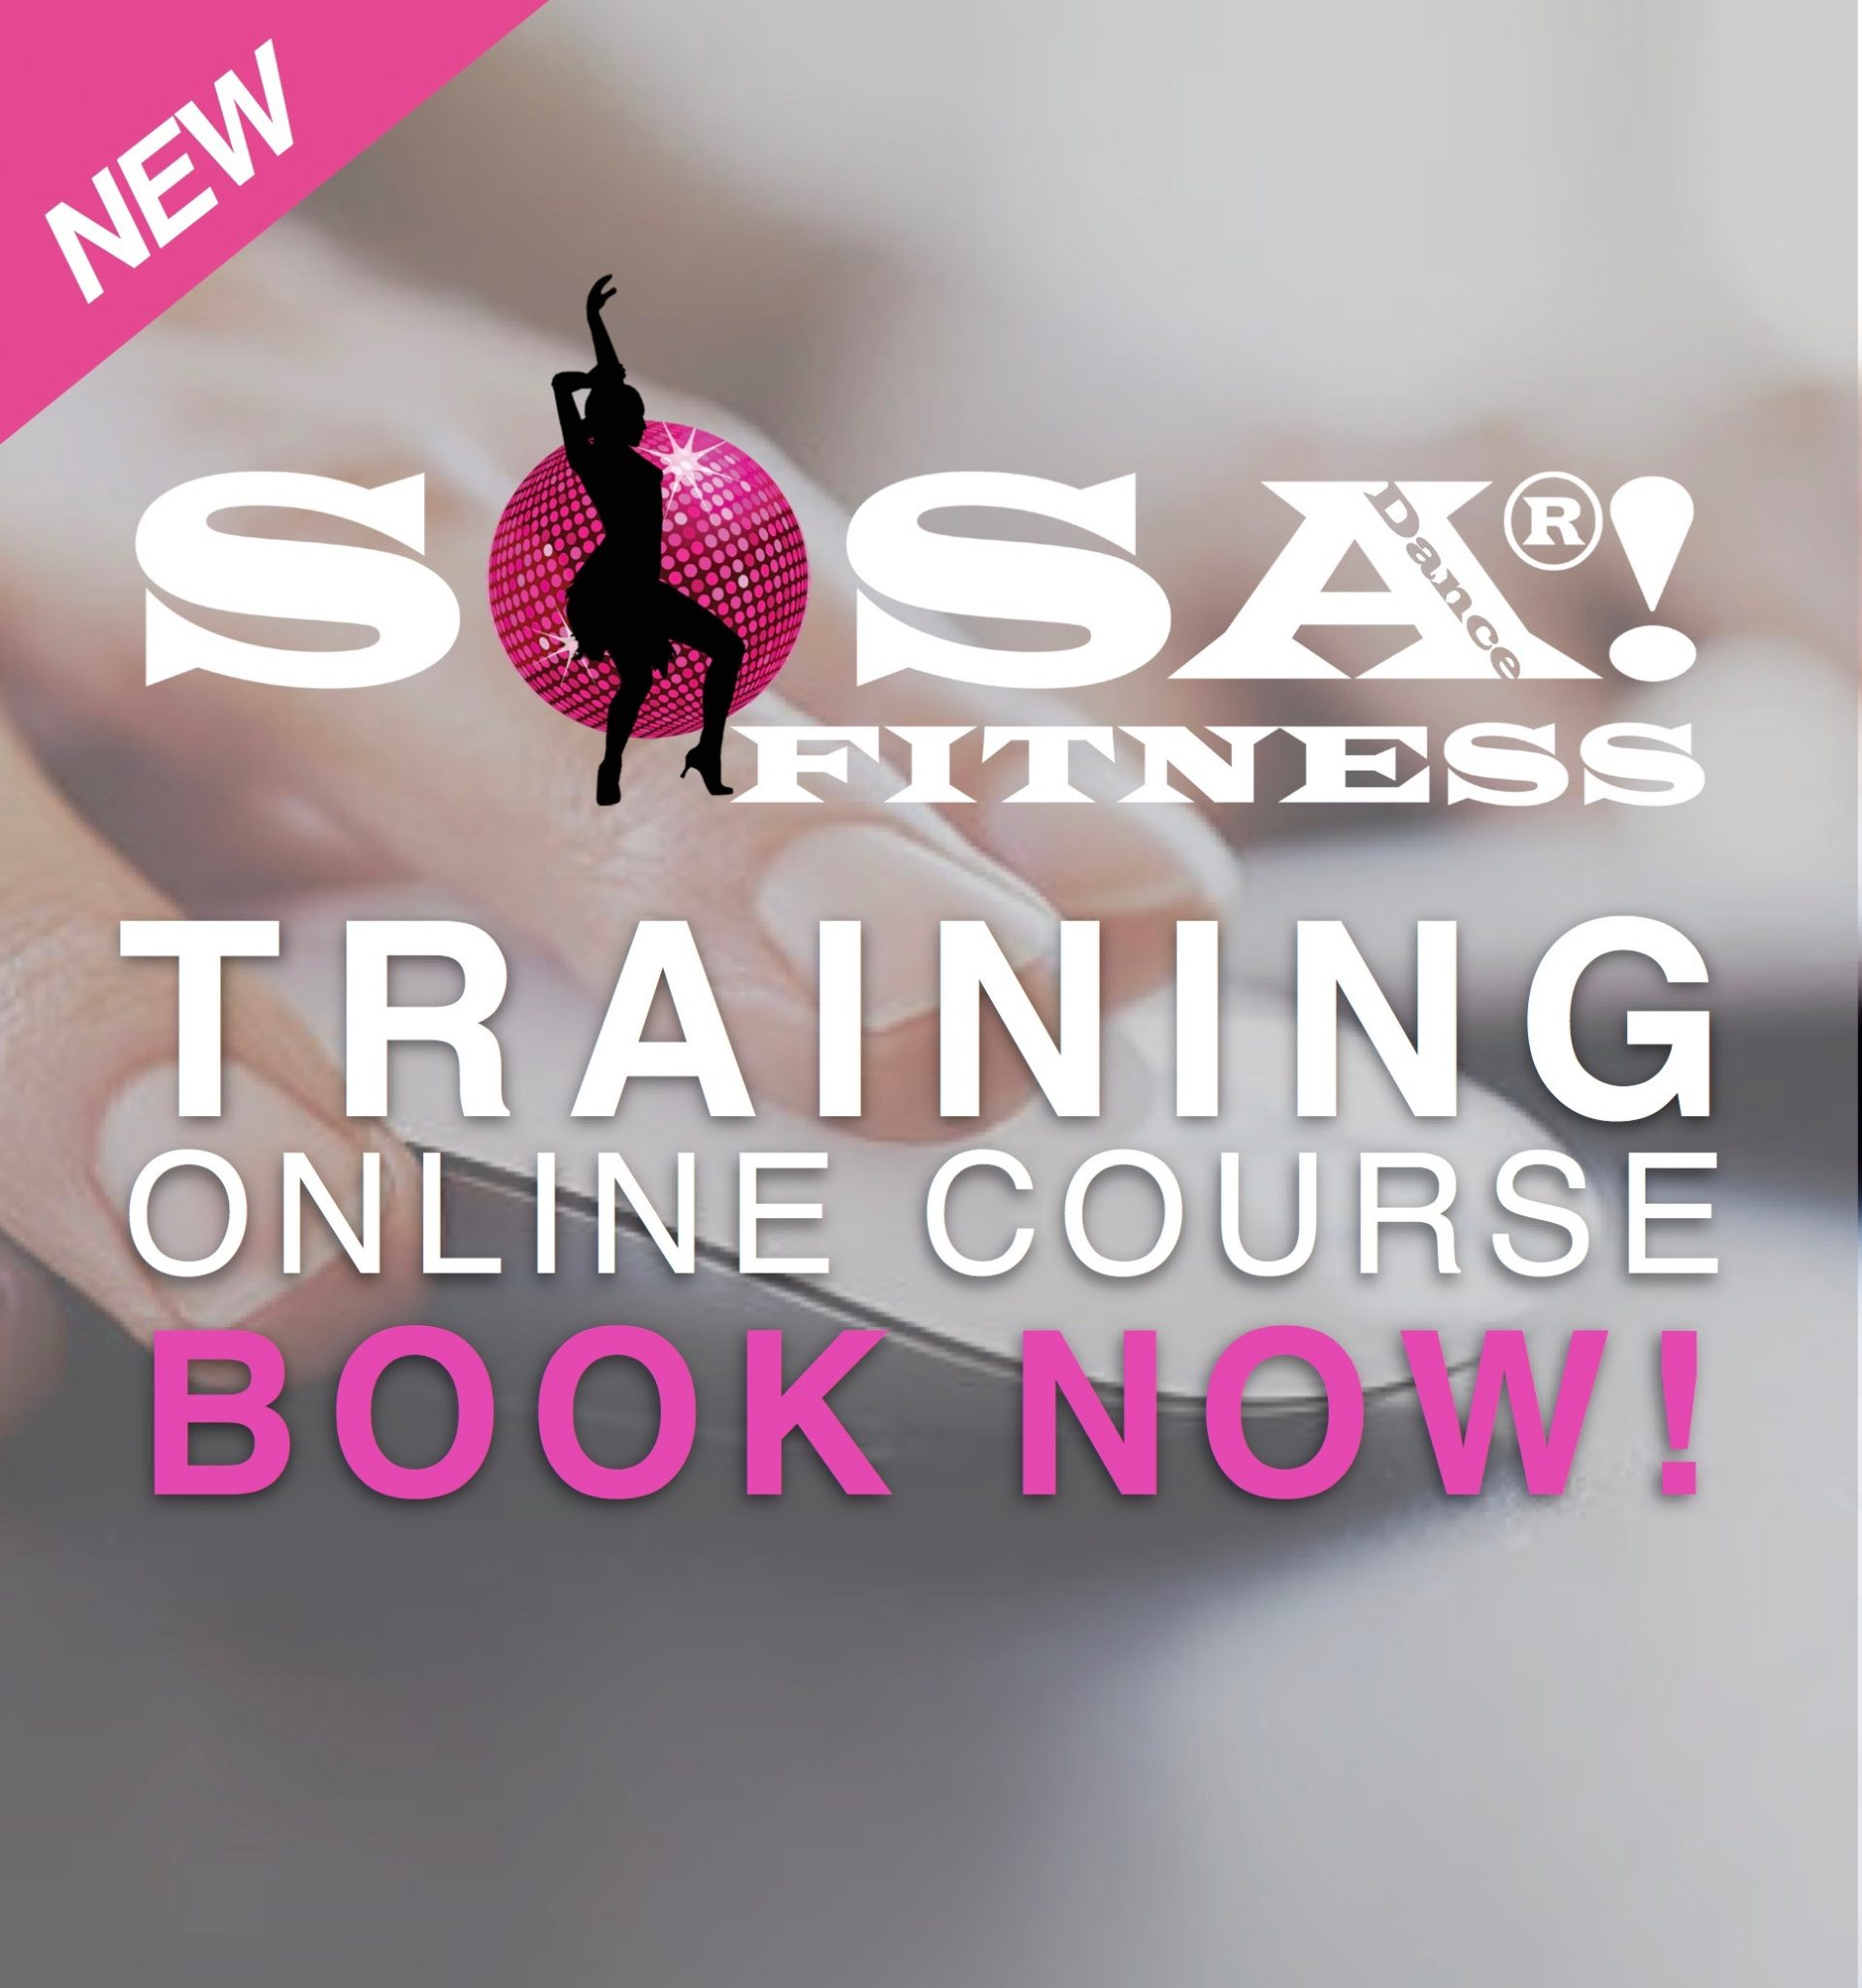 SOSA TRAINING ONLINE COURSE SHOP IMAGE LARGE SQ (1)